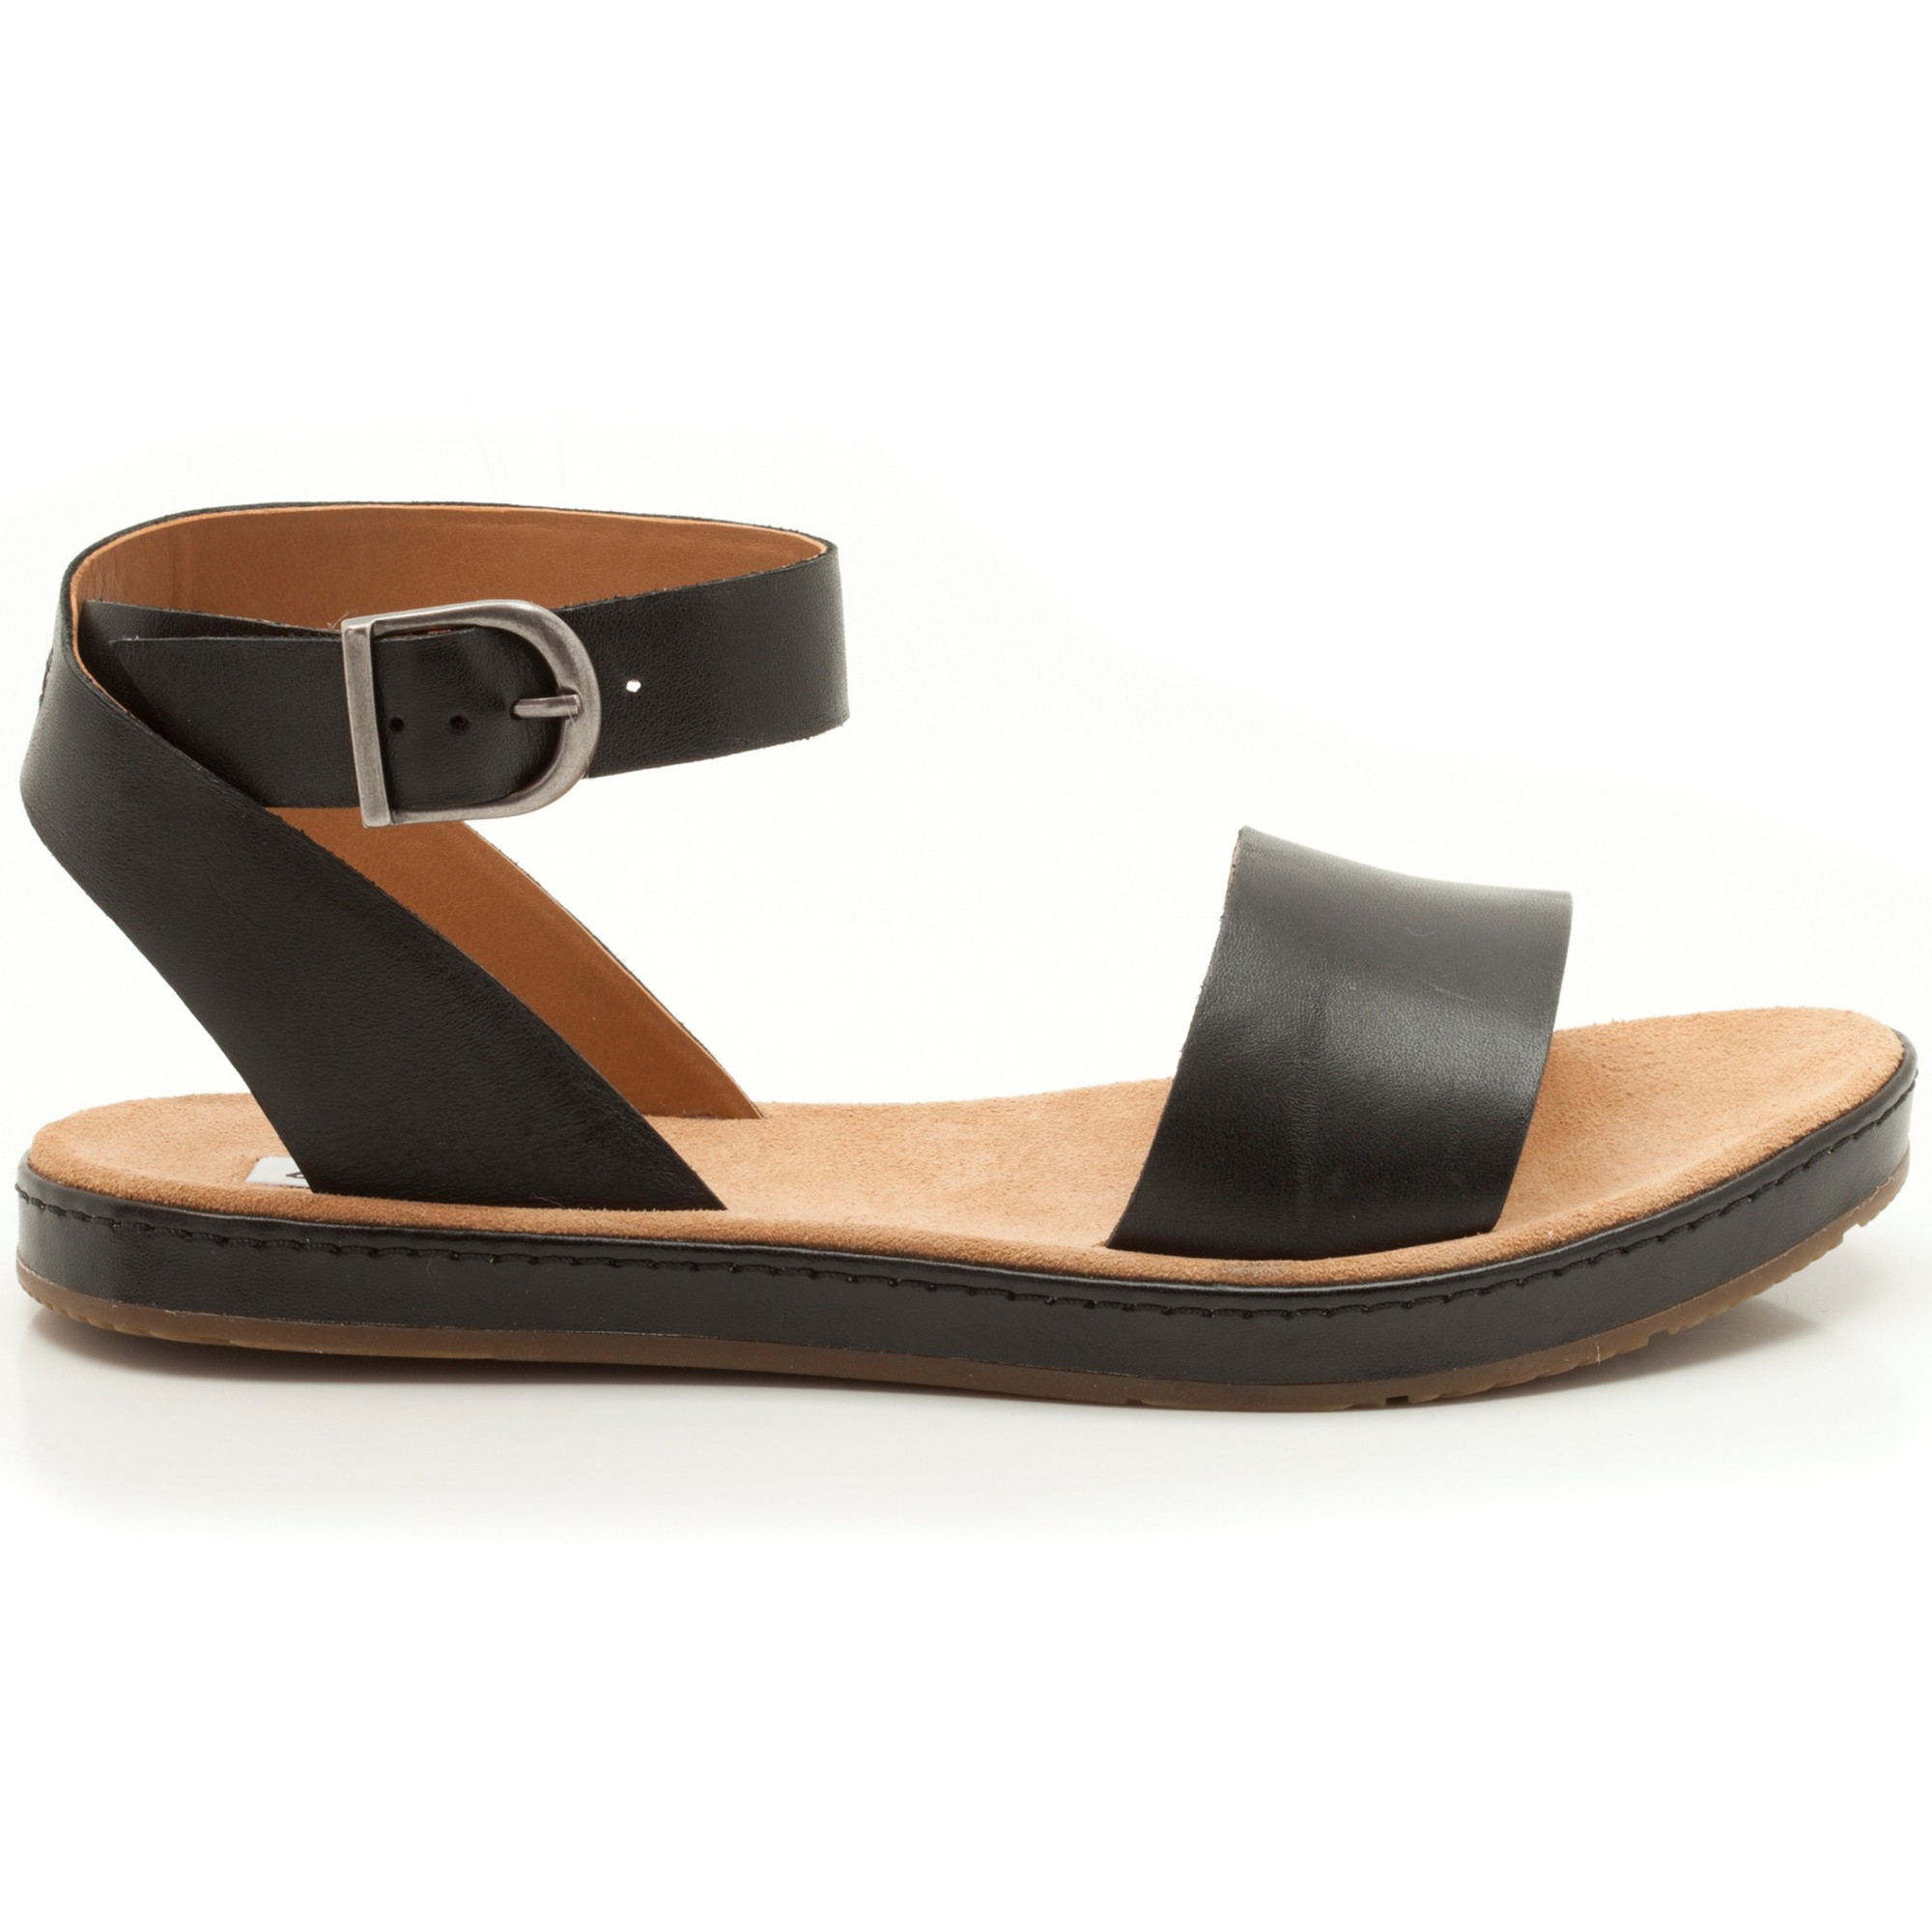 e8803fe5f Clarks Romantic Moon Leather Sandals in Black - Lyst